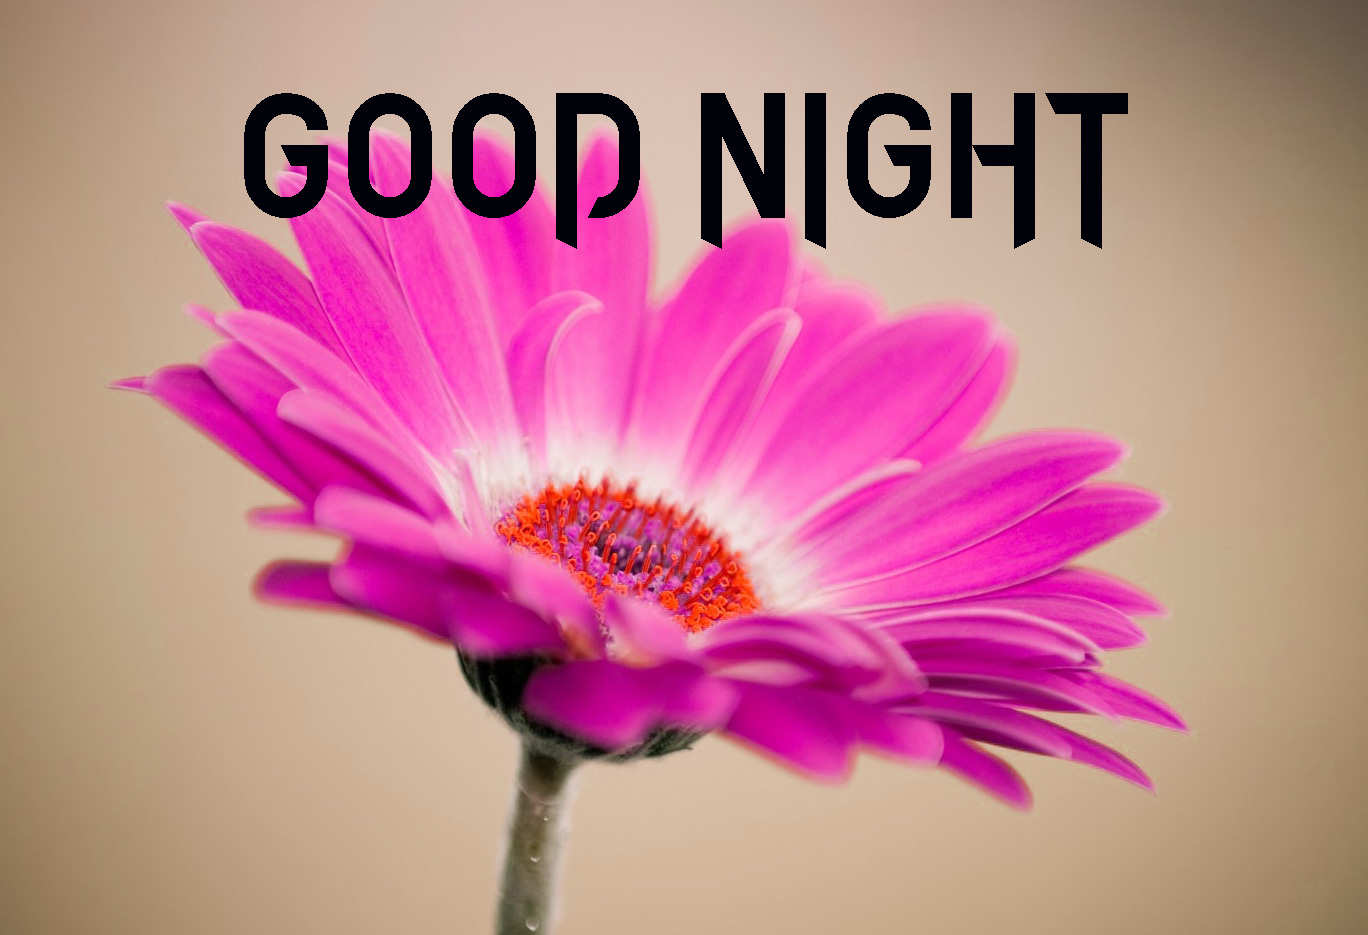 GOOD NIGHT IMAGES FOR LOVER / LOVE COUPLE  IMAGES  PICS WALLPAPER FREE DOWNLOAD